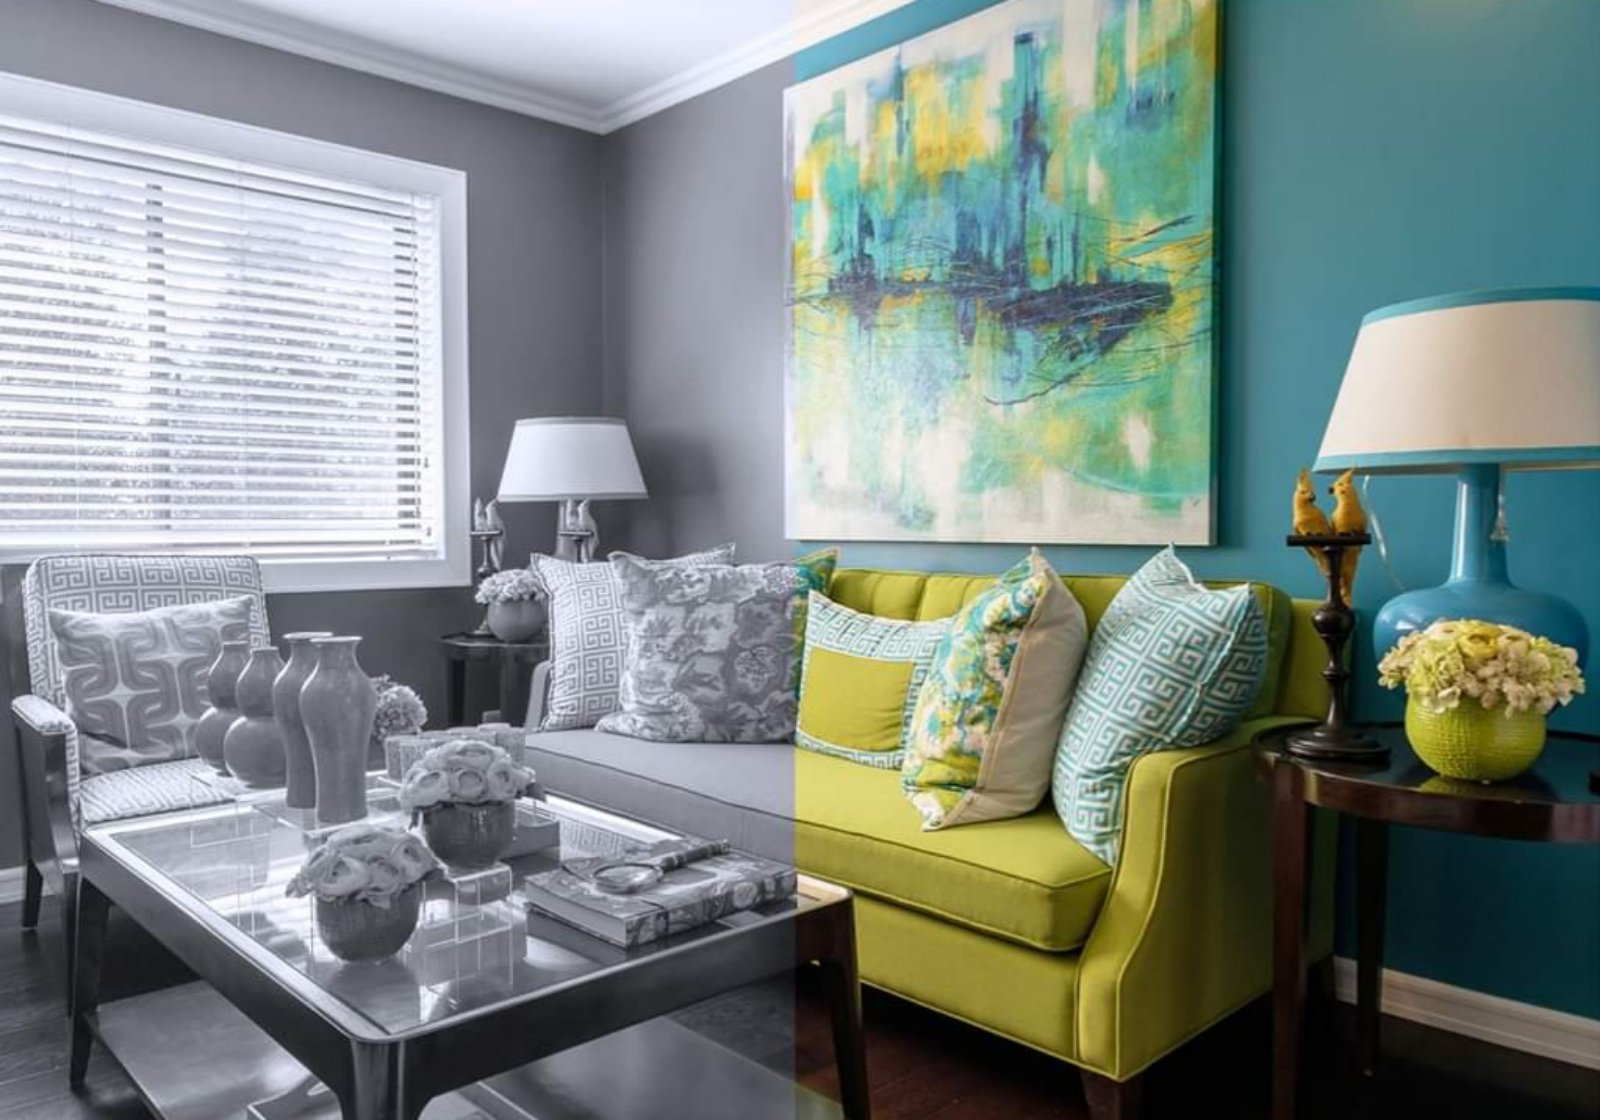 Importance of interior colors